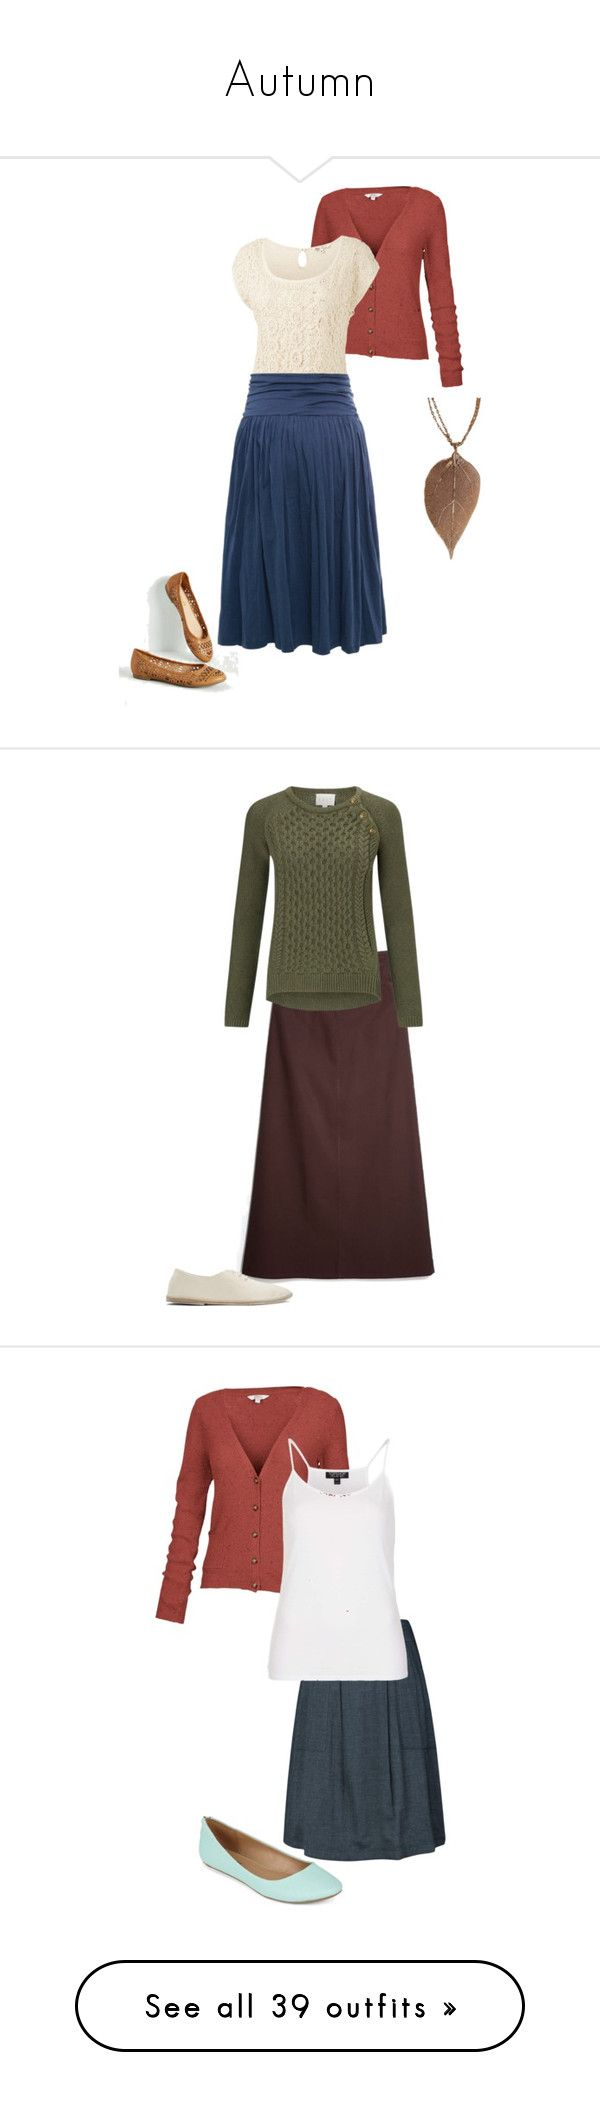 """""""Autumn"""" by beautiful-and-unique ❤ liked on Polyvore featuring Fat Face, Farhi by Nicole Farhi, Humble Chic, MANGO, EAST, Marsèll, Seasalt, Topshop, Call it SPRING and J.Crew"""